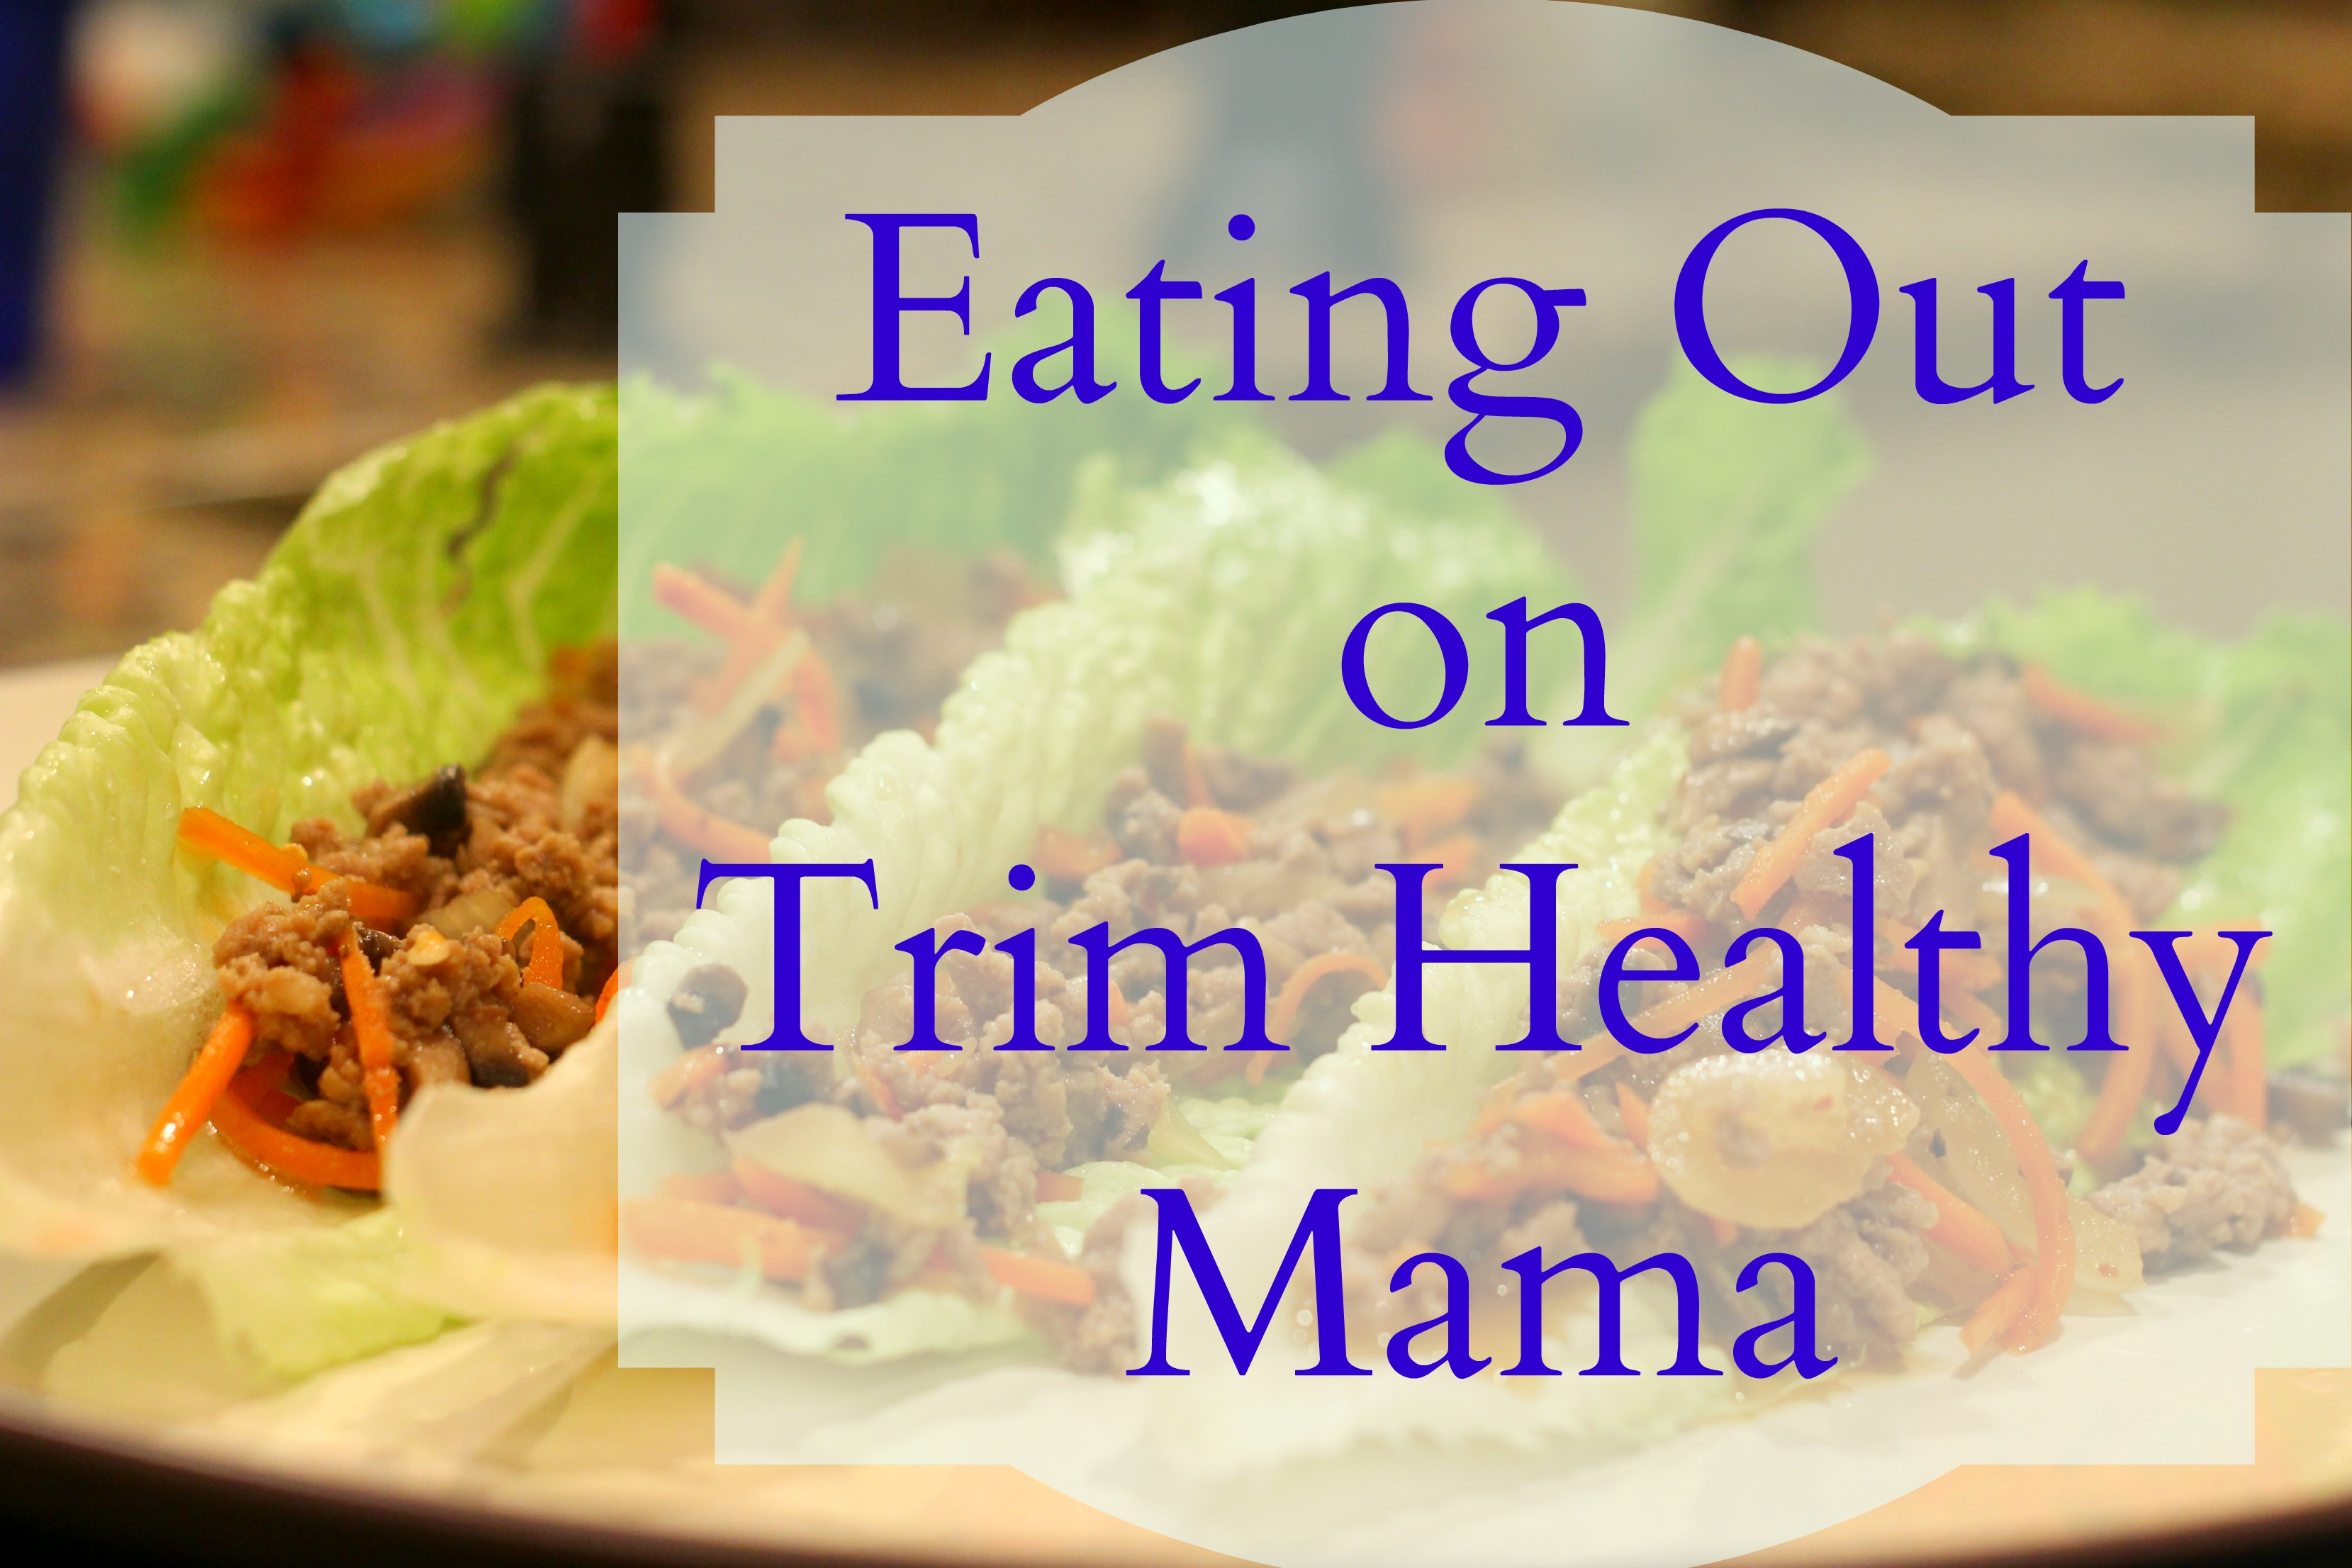 Eating Out on Trim Healthy Mama - Grassfed Mama